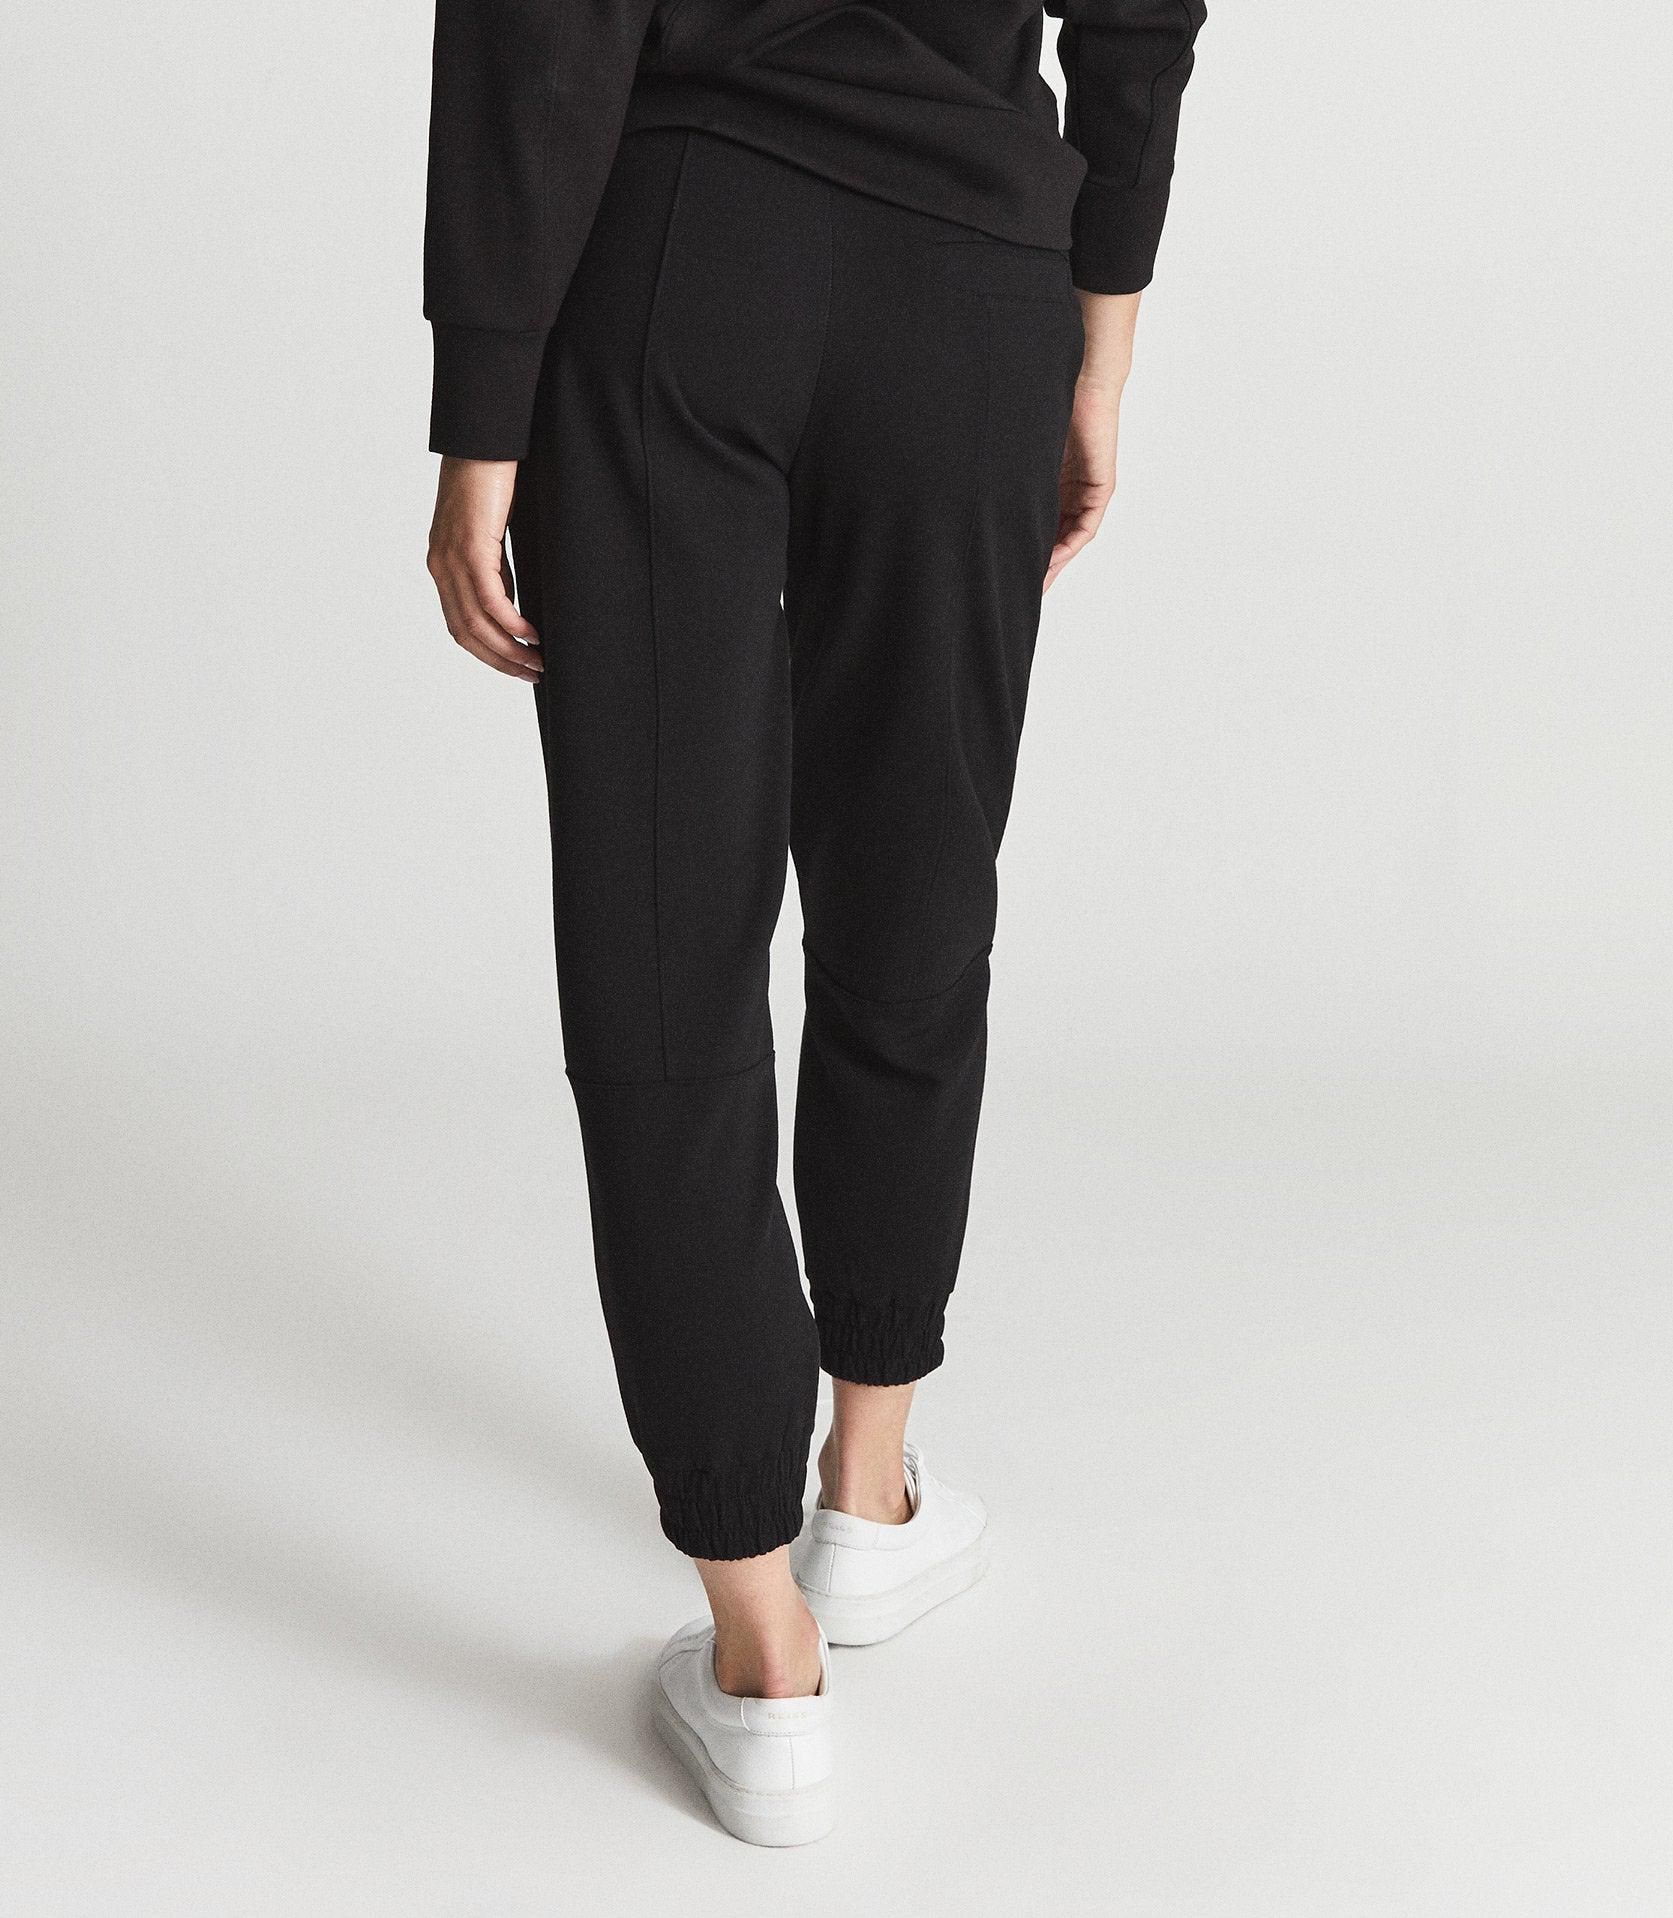 MANDY - TAILORED JOGGERS 2